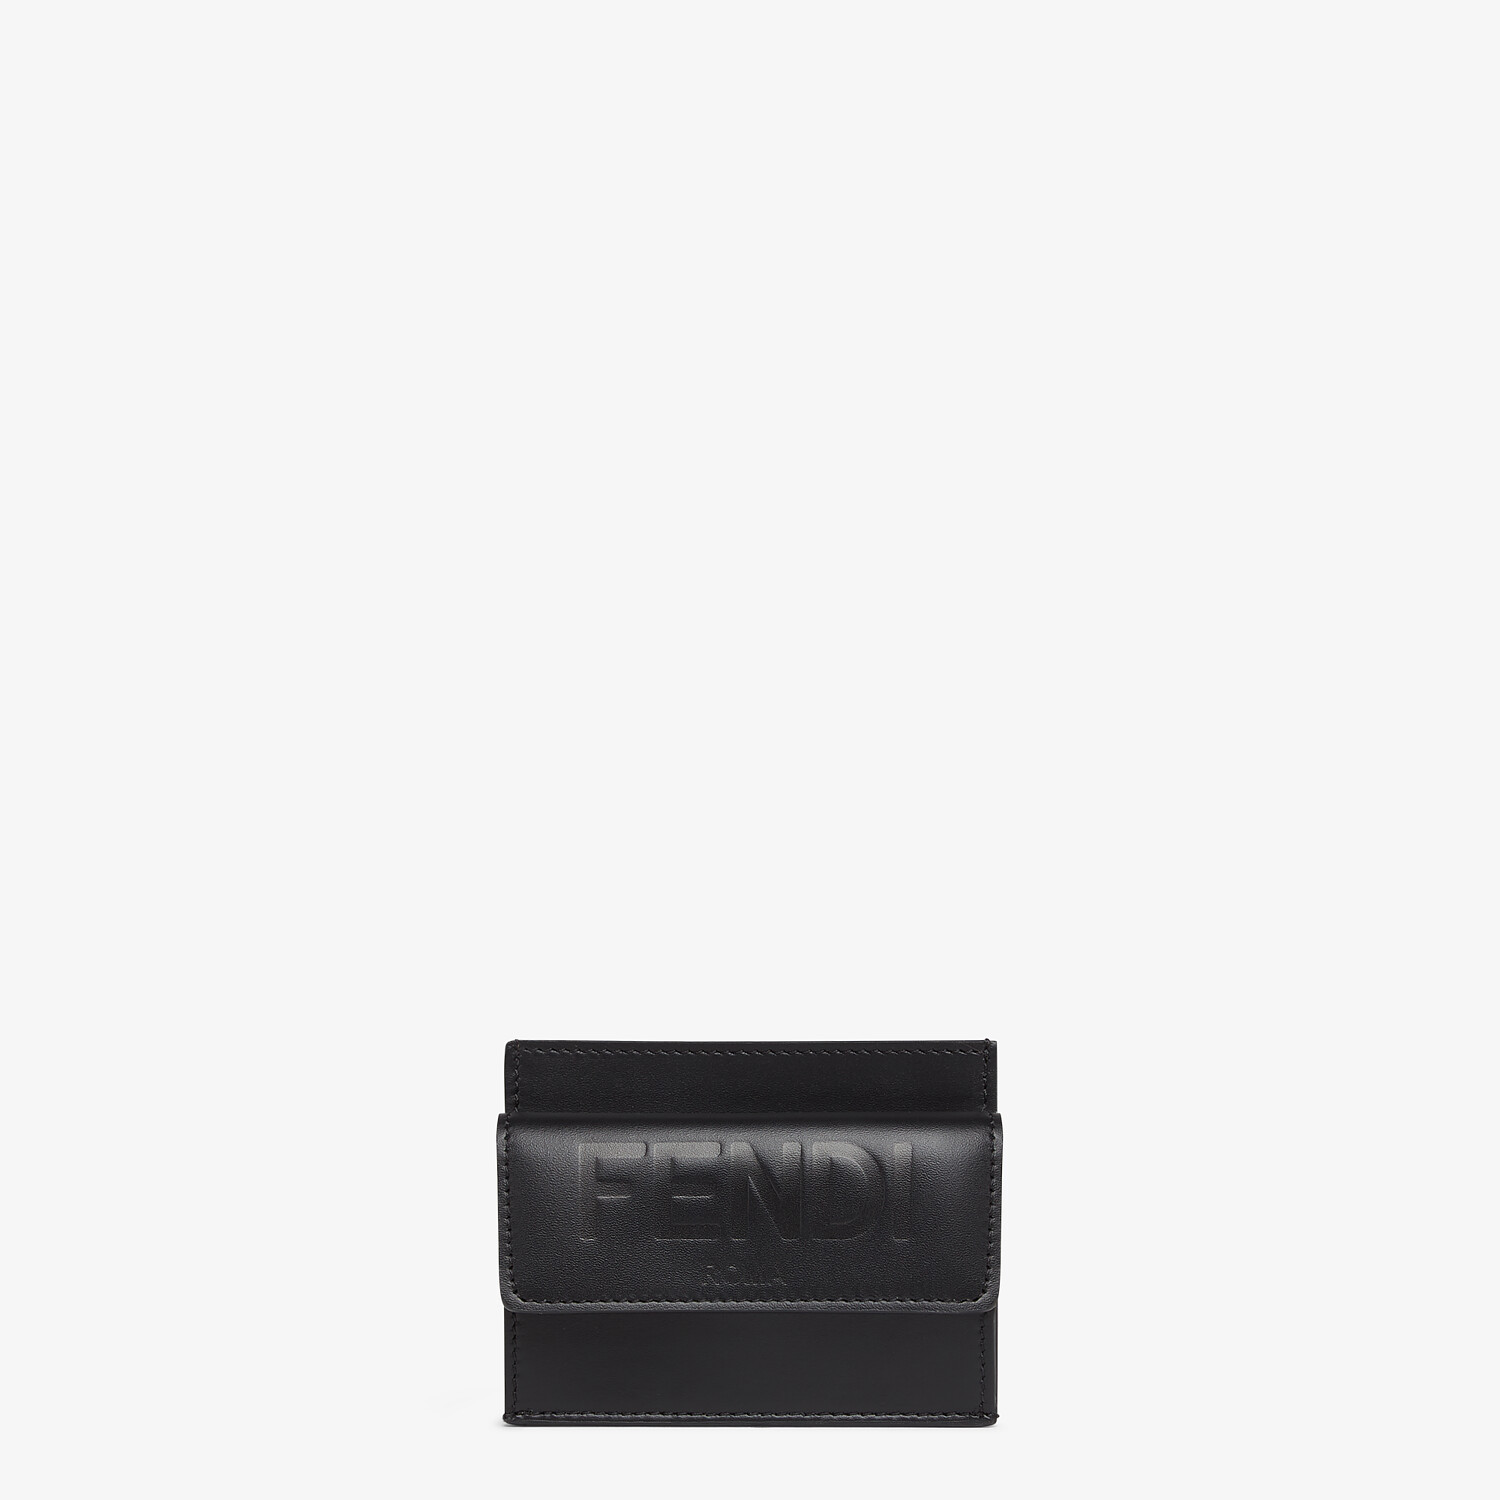 FENDI CARD HOLDER - Black leather cardholder - view 1 detail